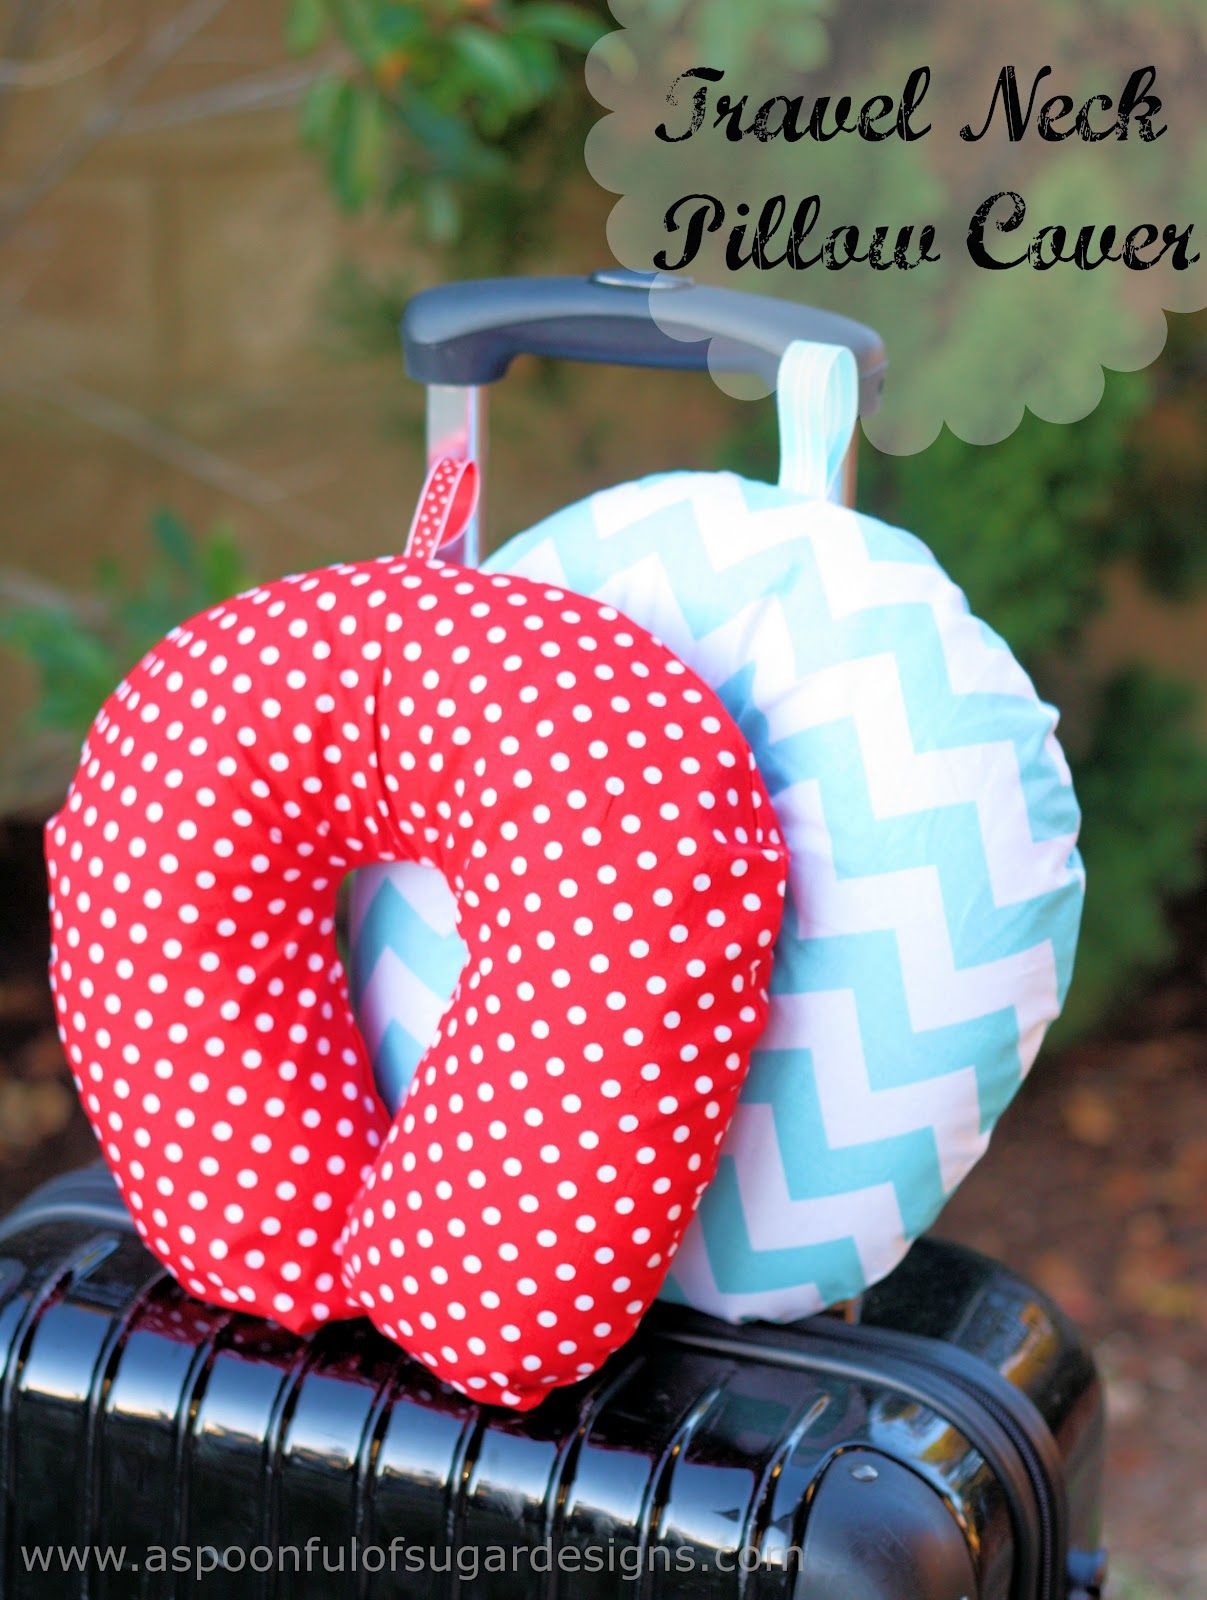 Travel Neck Pillow Cover A Spoonful Of Sugar Neck Pillow Travel Travel Pillow Covers Diy Sewing Projects